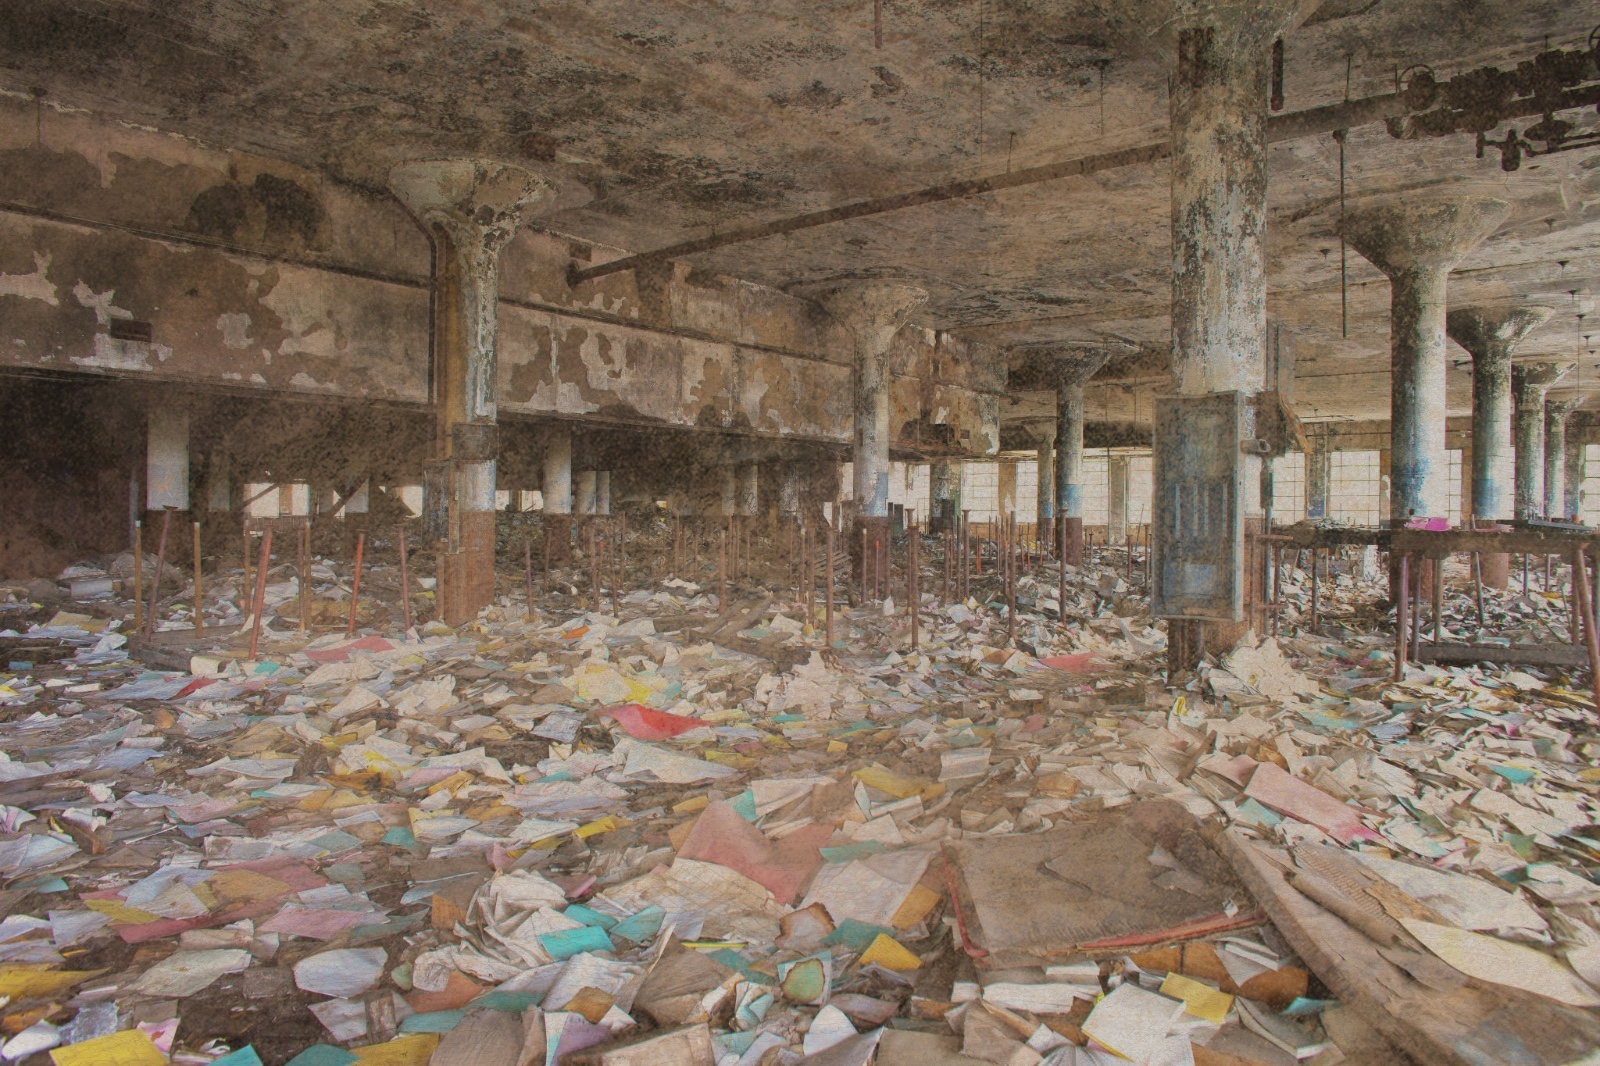 Photograph of the abandoned Detroit Public Schools Book Depository